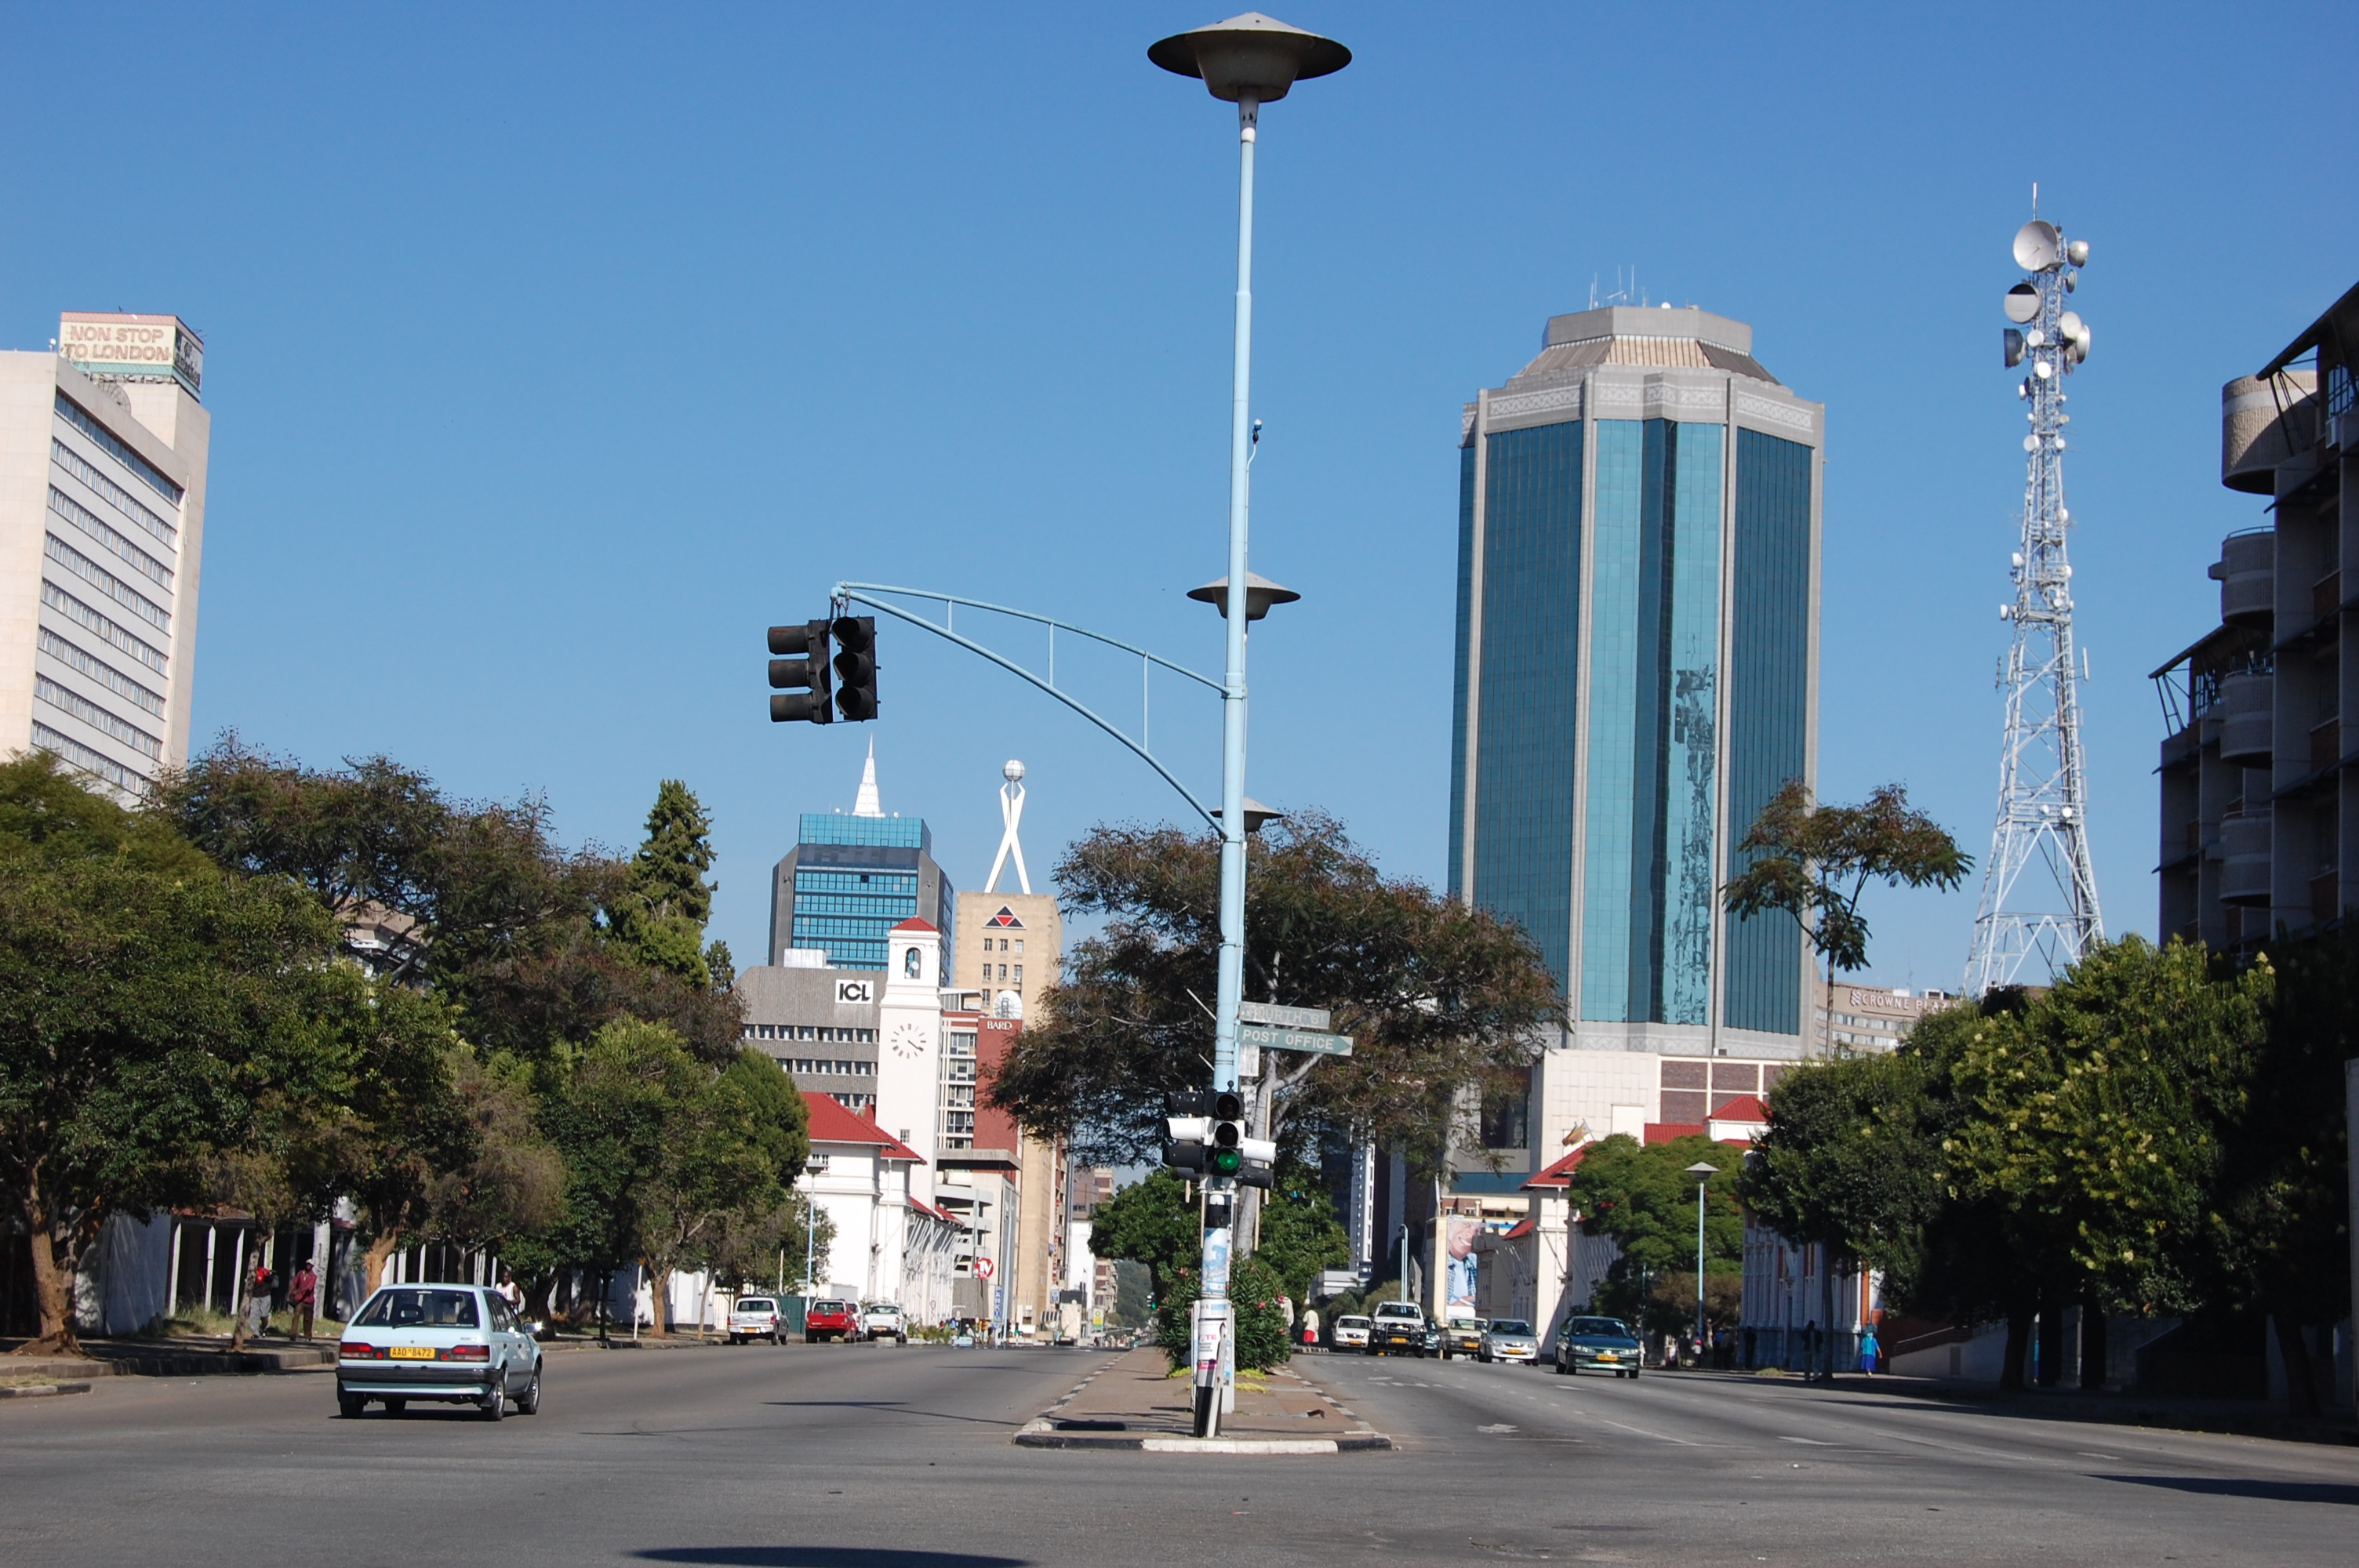 Reserve Bank Of Zimbabwe Building In The Background